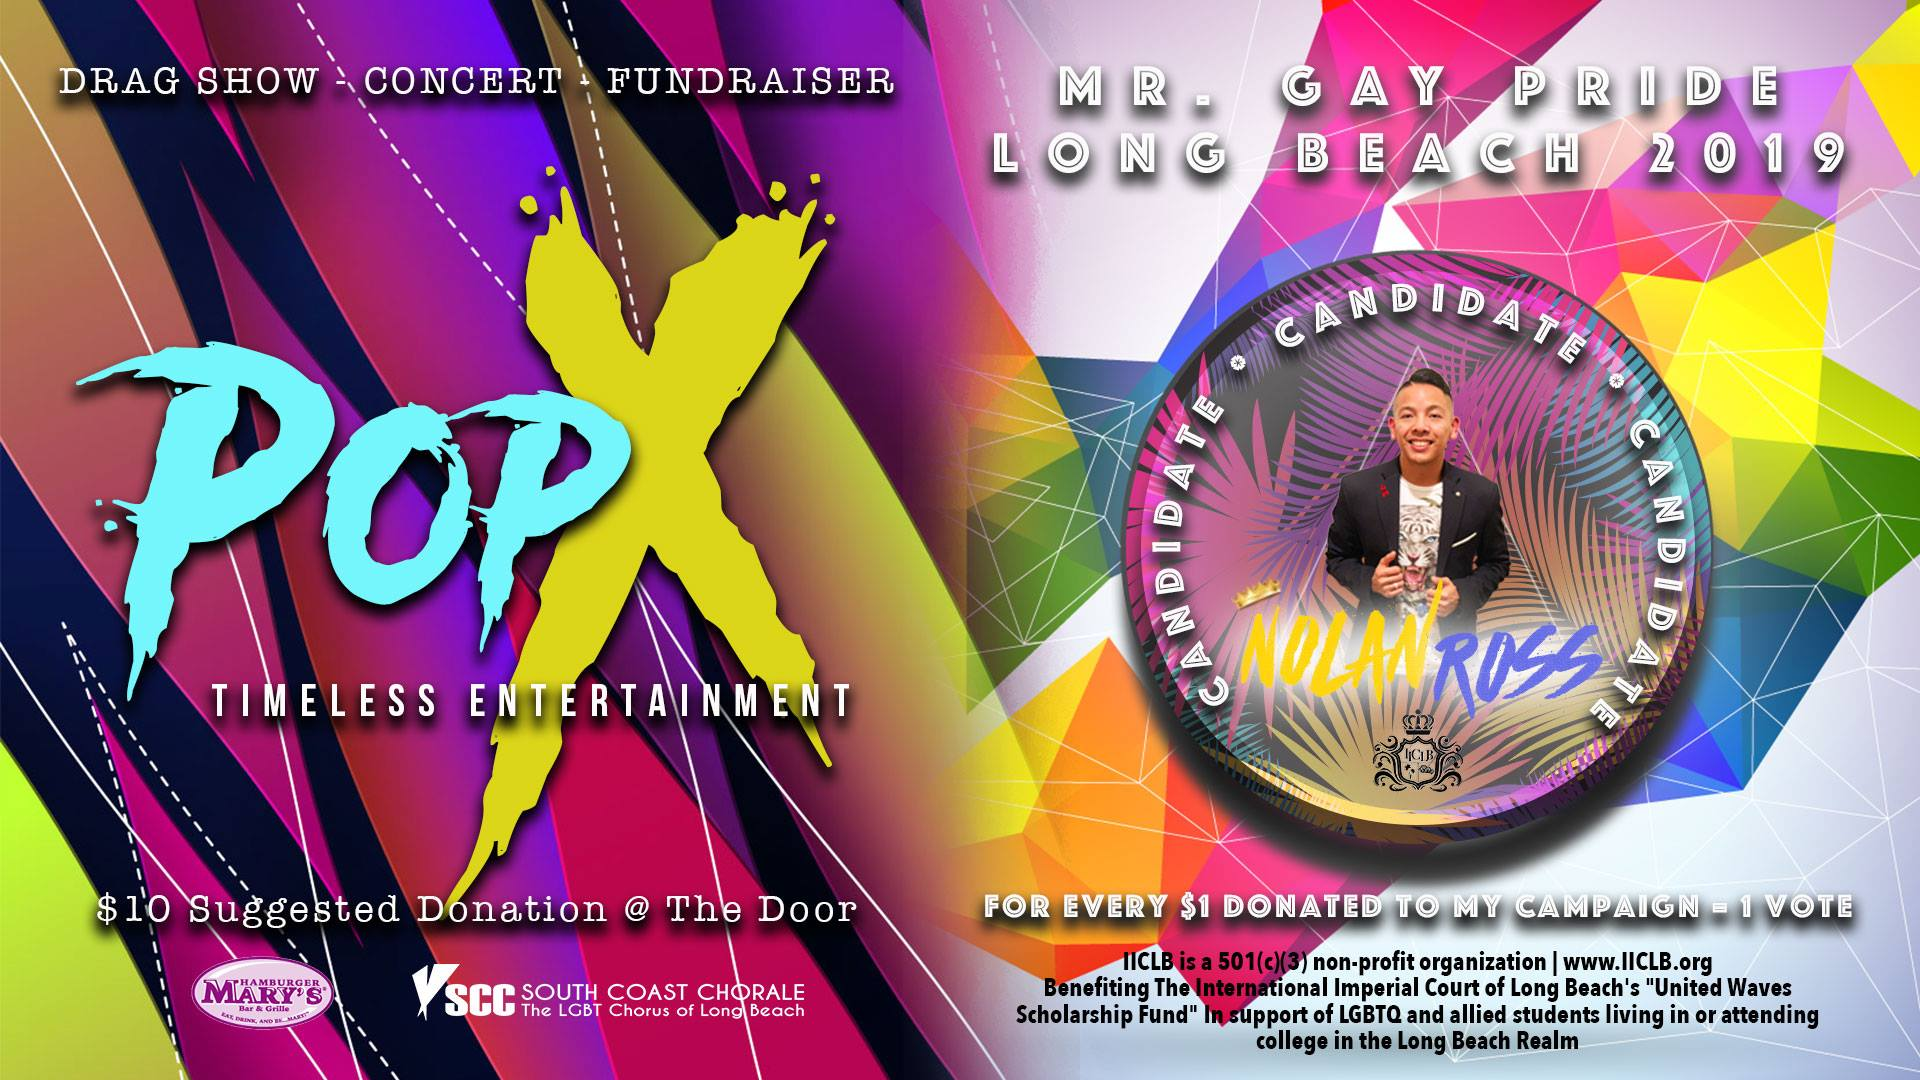 PopX | Nolan Ross for Mr. Gay Pride Long Beach 2019